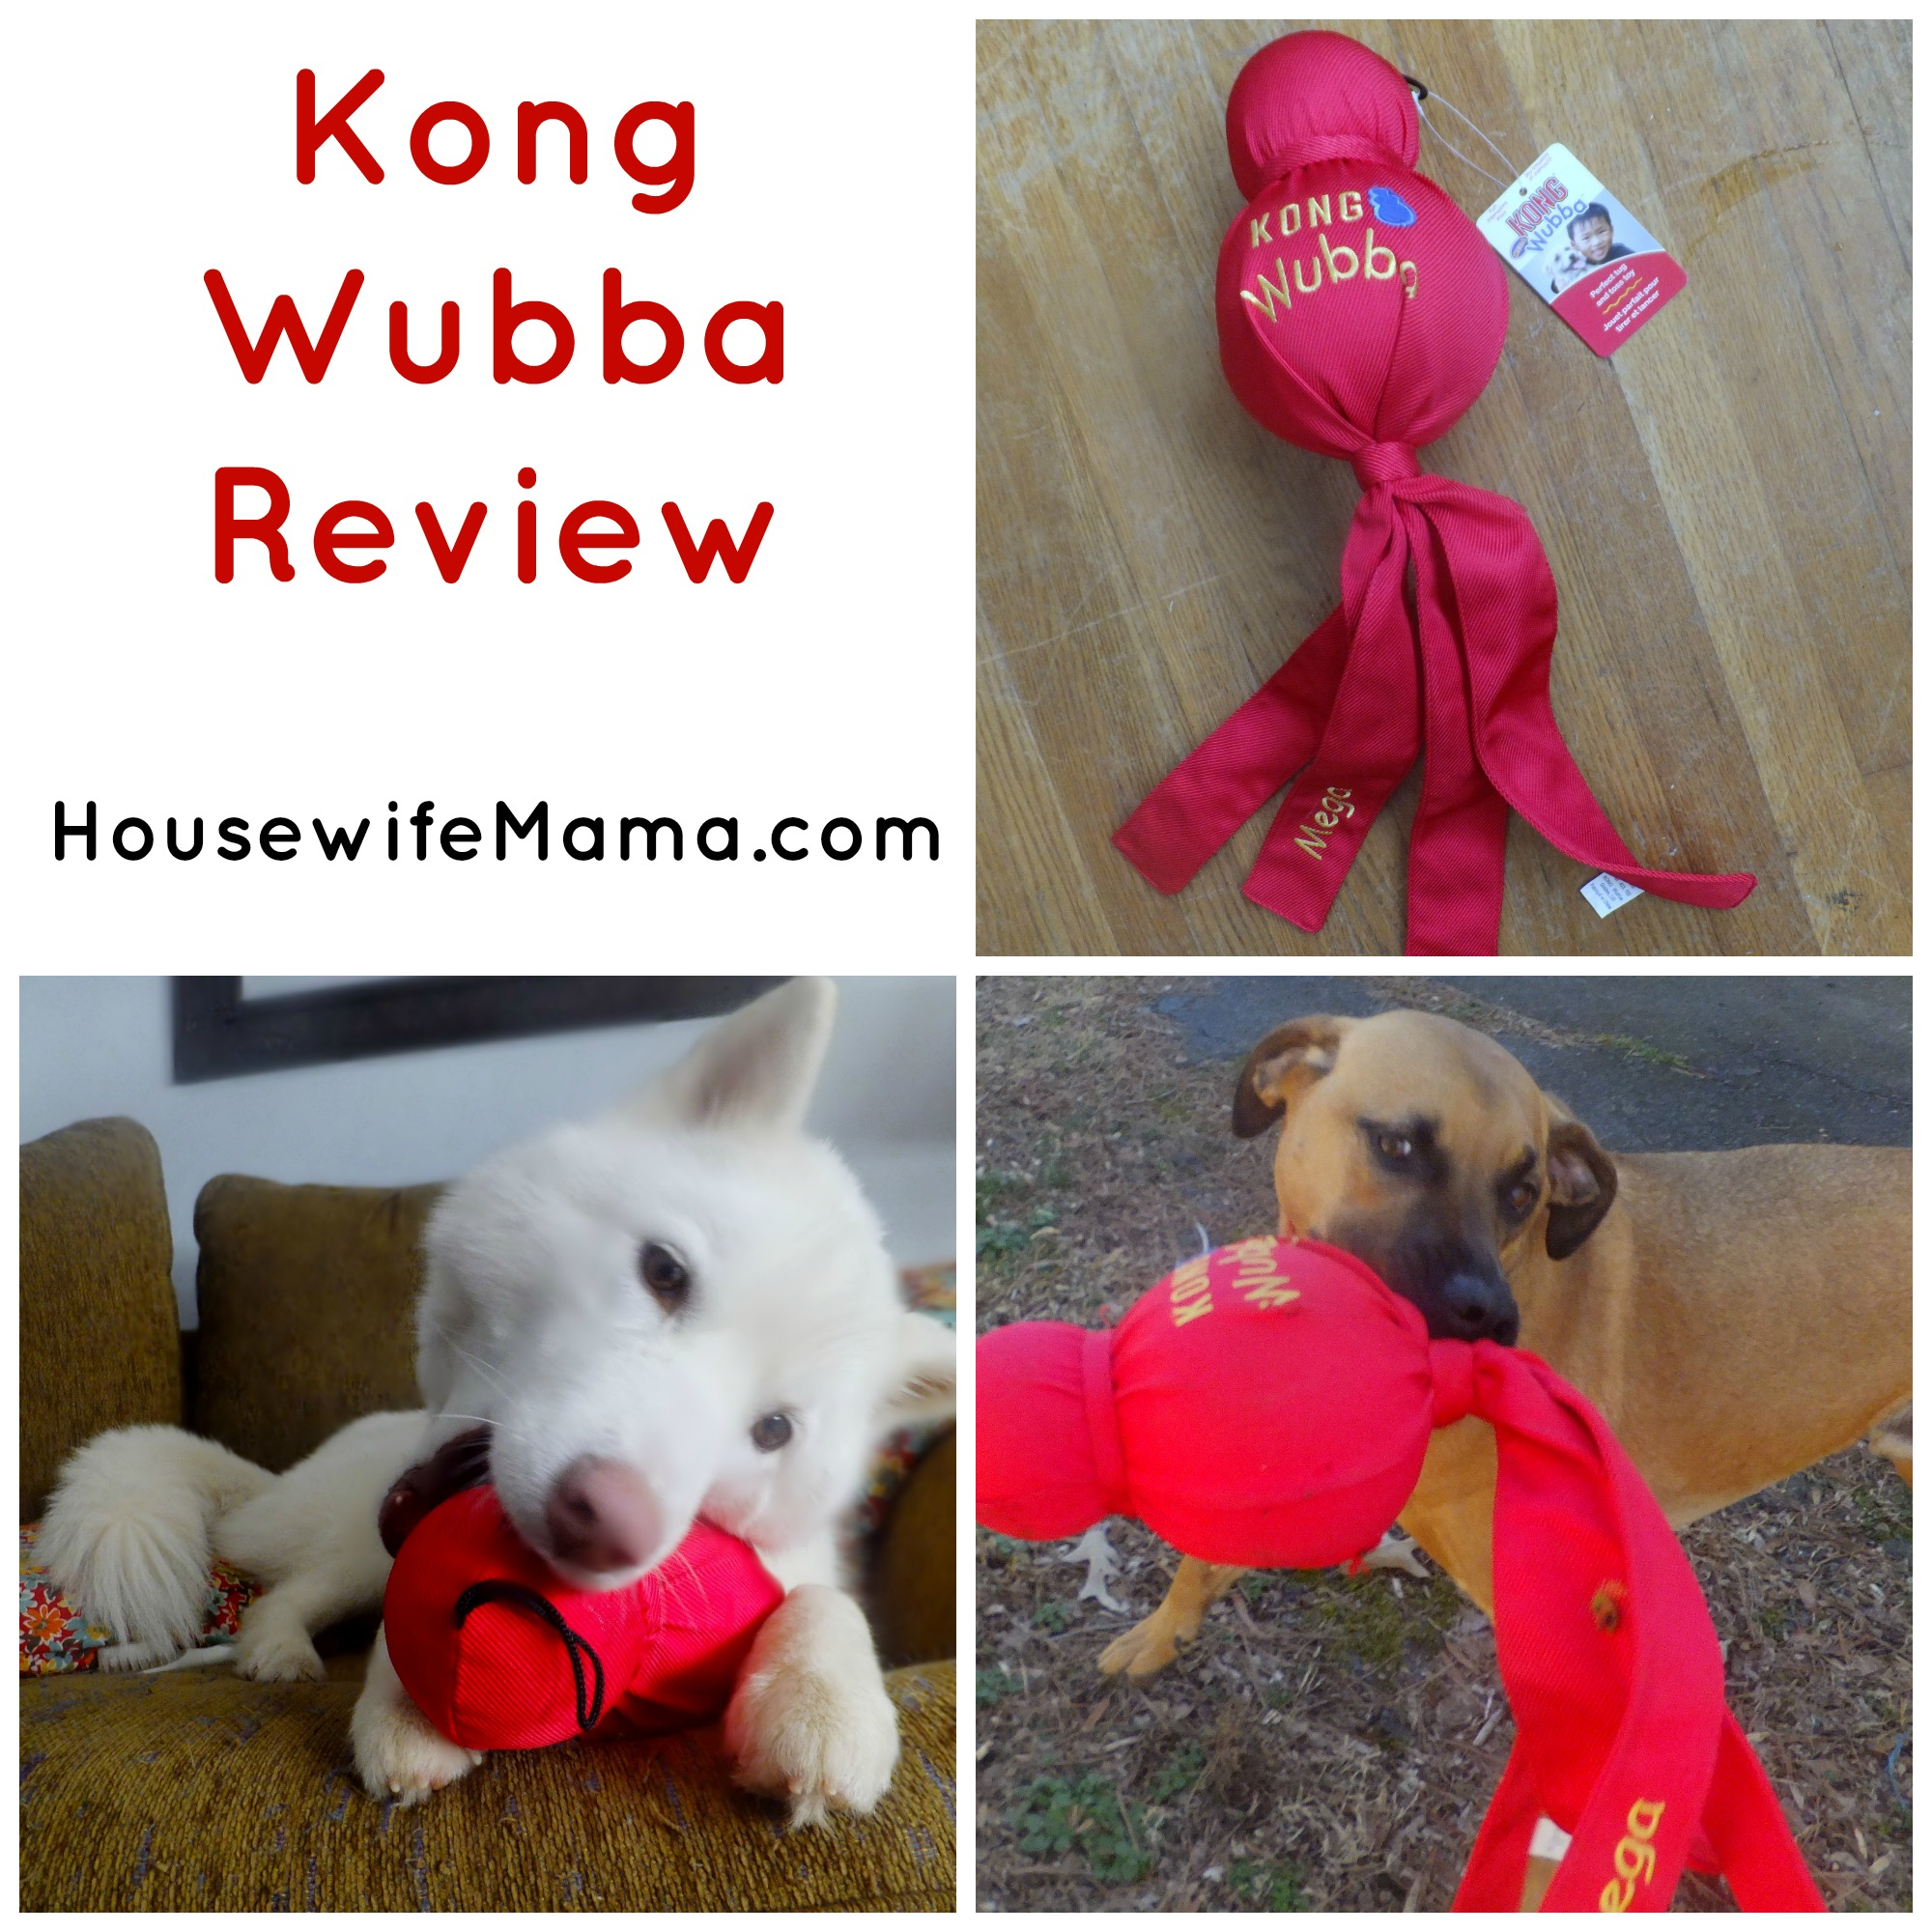 Kong Toy giveaway via EntirelyPets.com now through 3/04/14